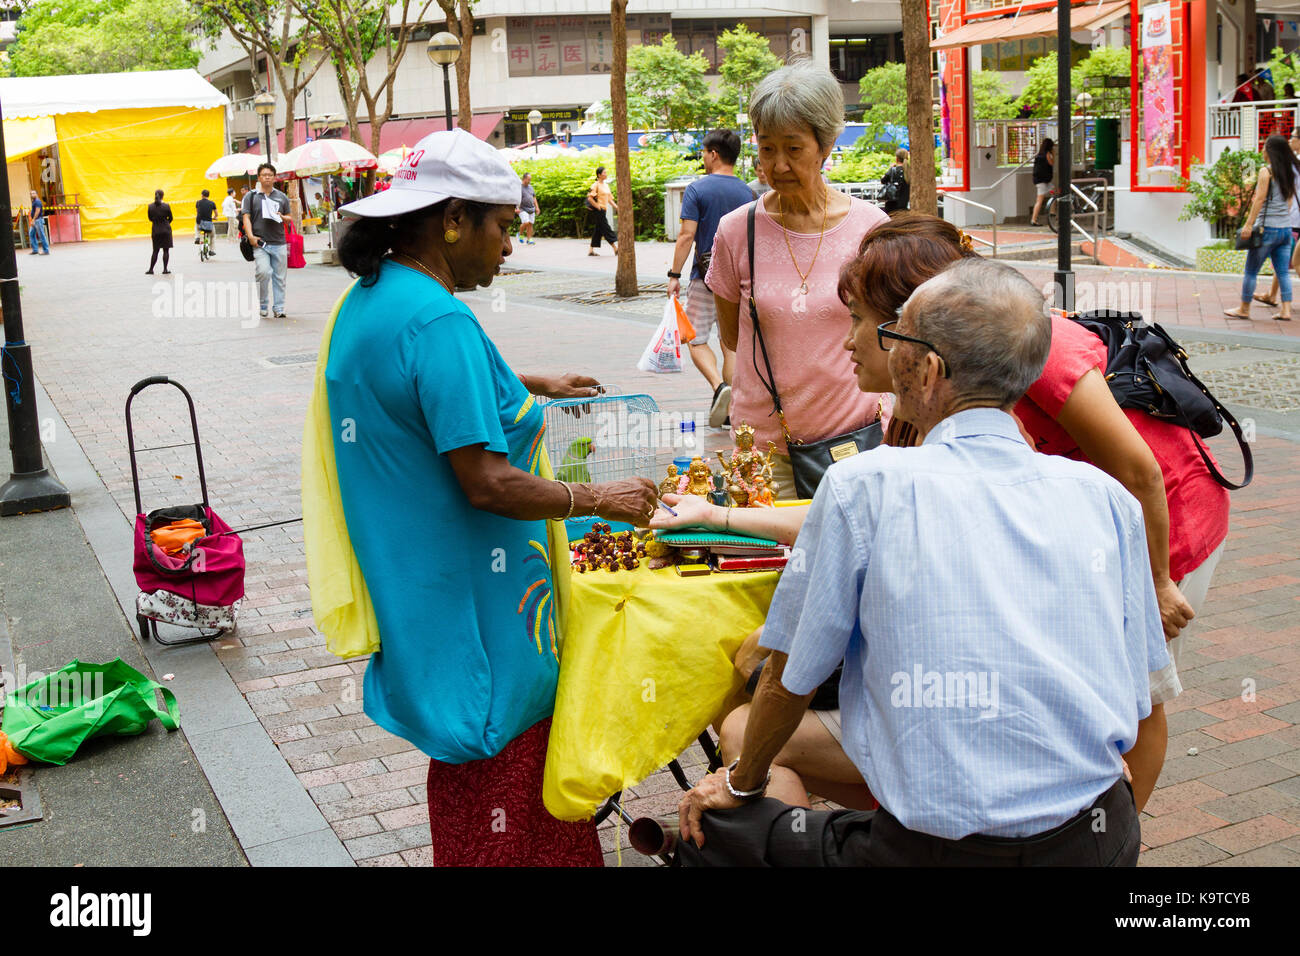 SINGAPORE - SEPTEMBER 7, 2017: A fortune teller practices chiromancy by reading the palm of a devotee outside the - Stock Image